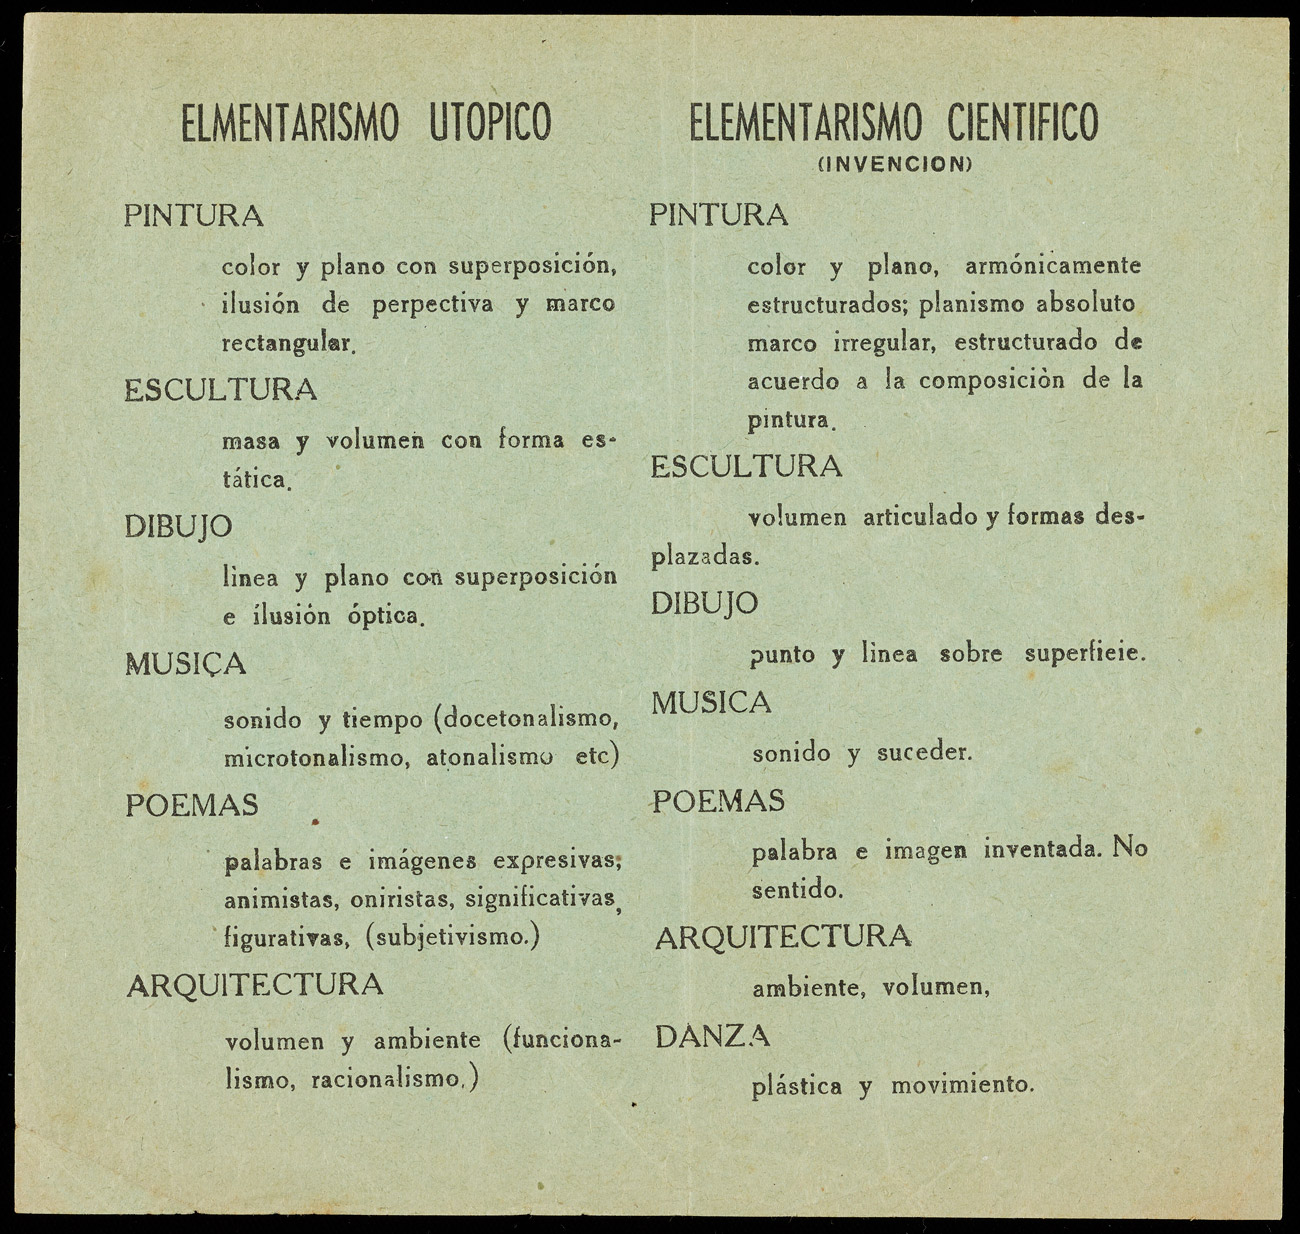 A sheet of paper shows two columns printed in Spanish comparing characteristics of various art forms under Elementarismo Utopico and Elemntarismo Cientifico (invencion)